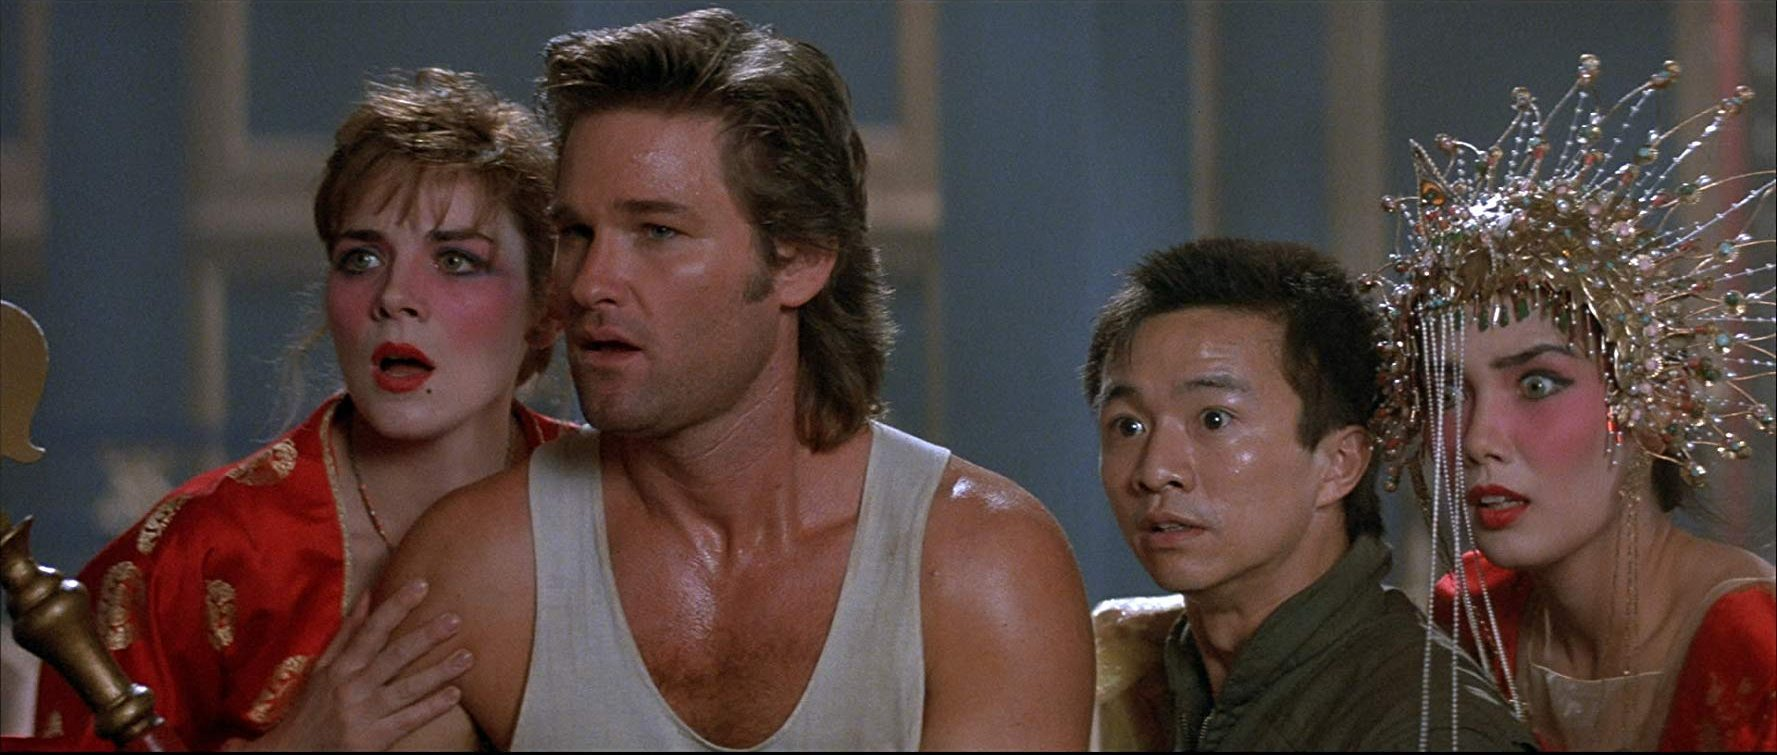 [News] BIG TROUBLE IN LITTLE CHINA Collector's Edition Coming This December